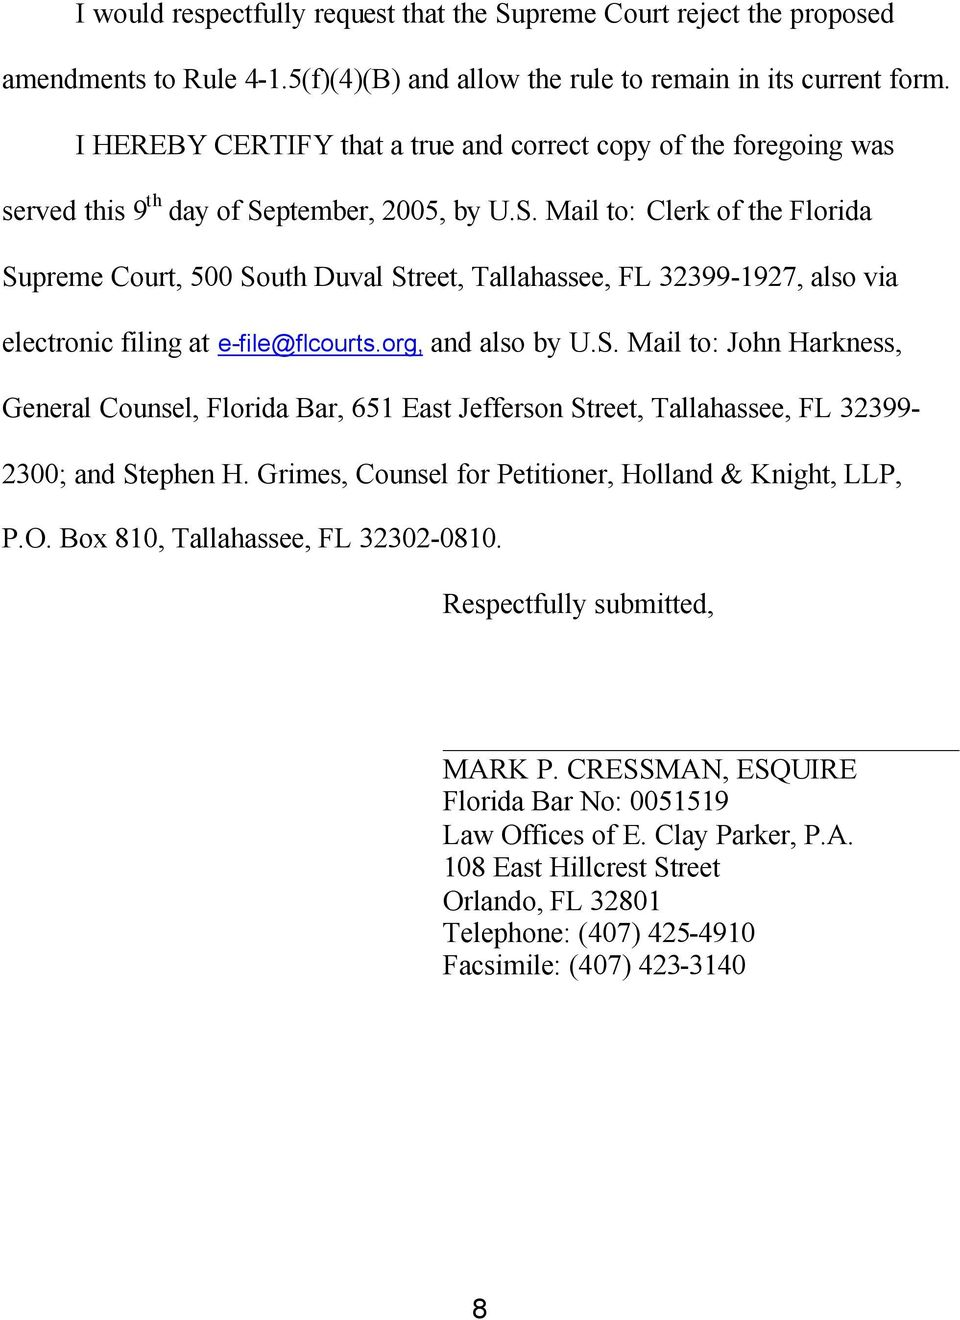 ptember, 2005, by U.S. Mail to: Clerk of the Florida Supreme Court, 500 South Duval Street, Tallahassee, FL 32399-1927, also via electronic filing at e-file@flcourts.org, and also by U.S. Mail to: John Harkness, General Counsel, Florida Bar, 651 East Jefferson Street, Tallahassee, FL 32399-2300; and Stephen H.